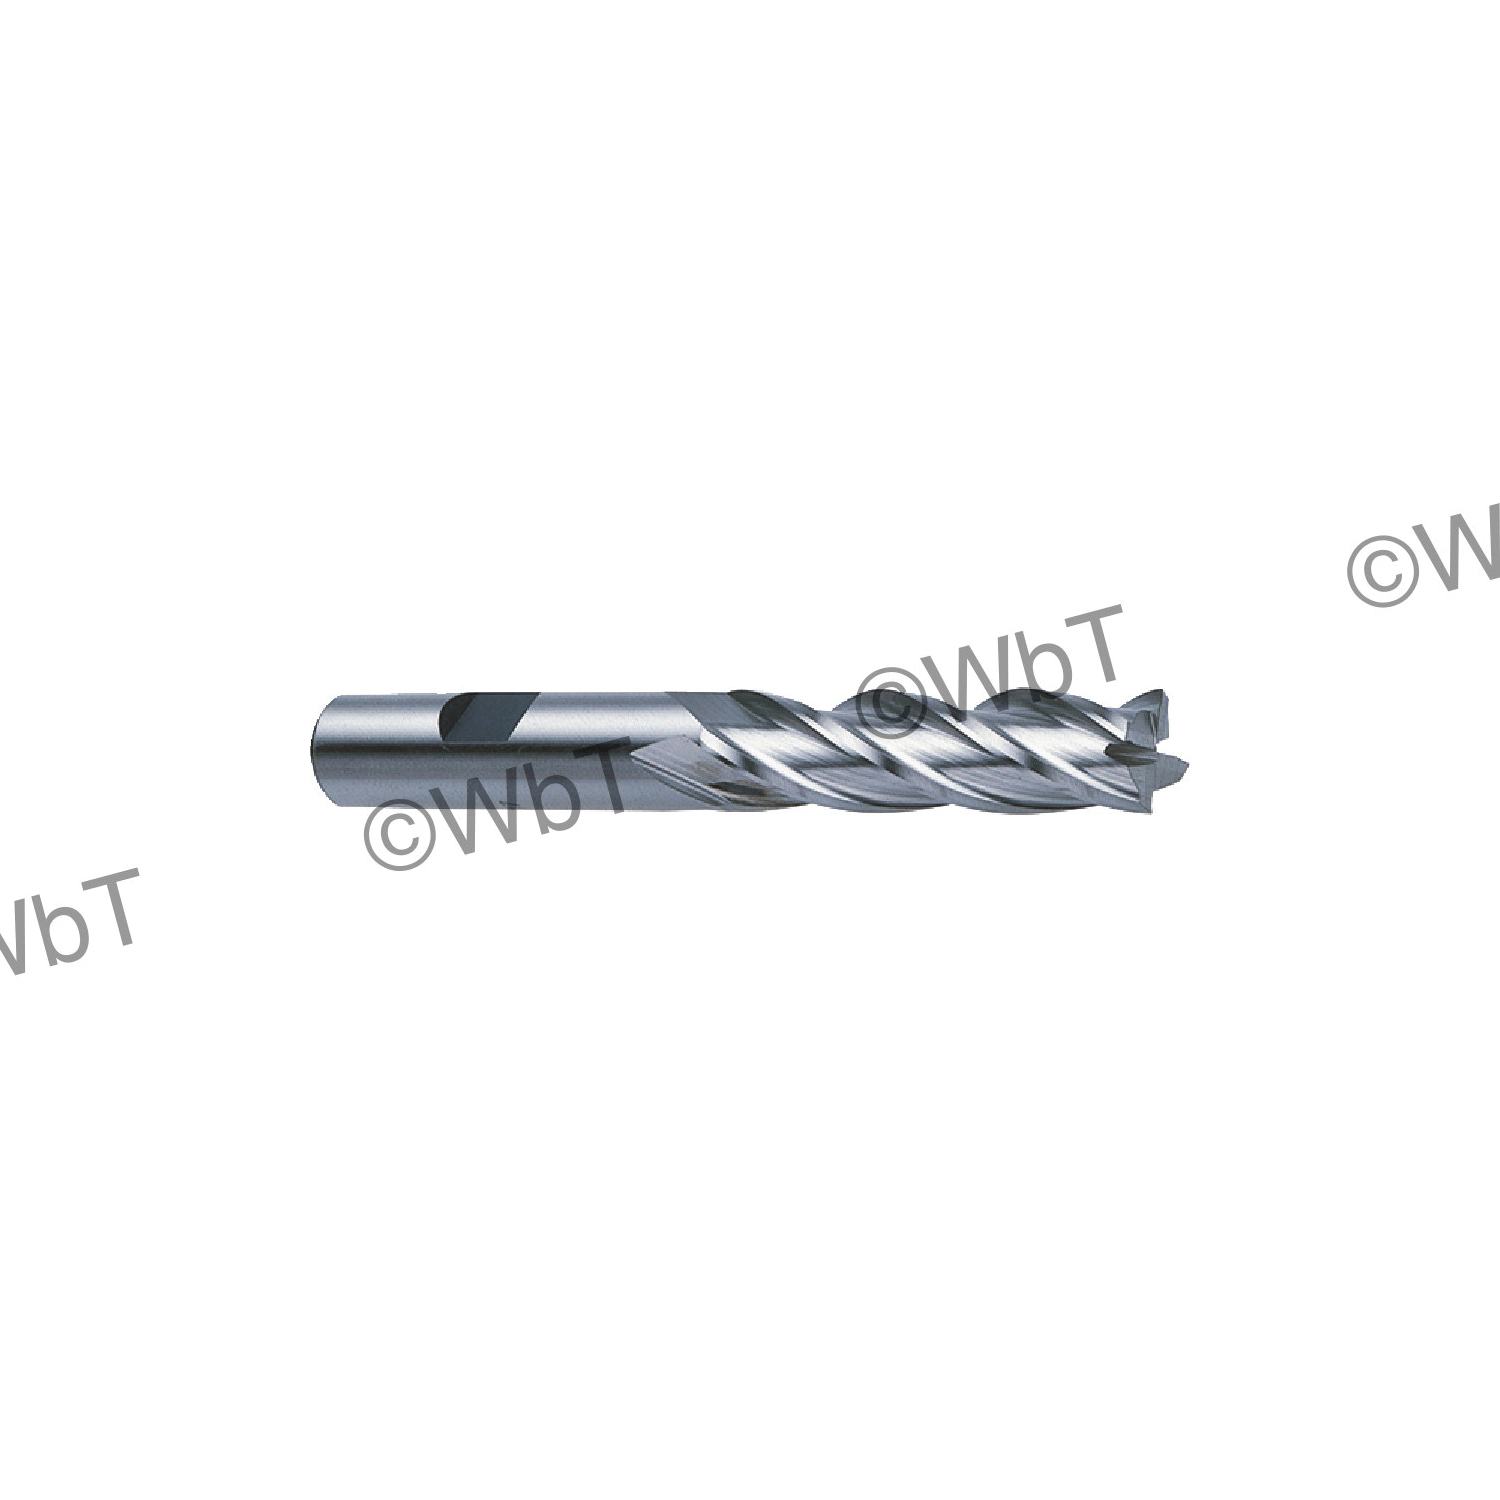 TTC 08-015-420 Center Cutting Economy Standard Length Single End End Mill, 1/2 in Dia Cutter, 1-1/4 in Length of Cut, 4 Flutes, 1/2 in Dia Shank, 3-1/4 in OAL, Bright